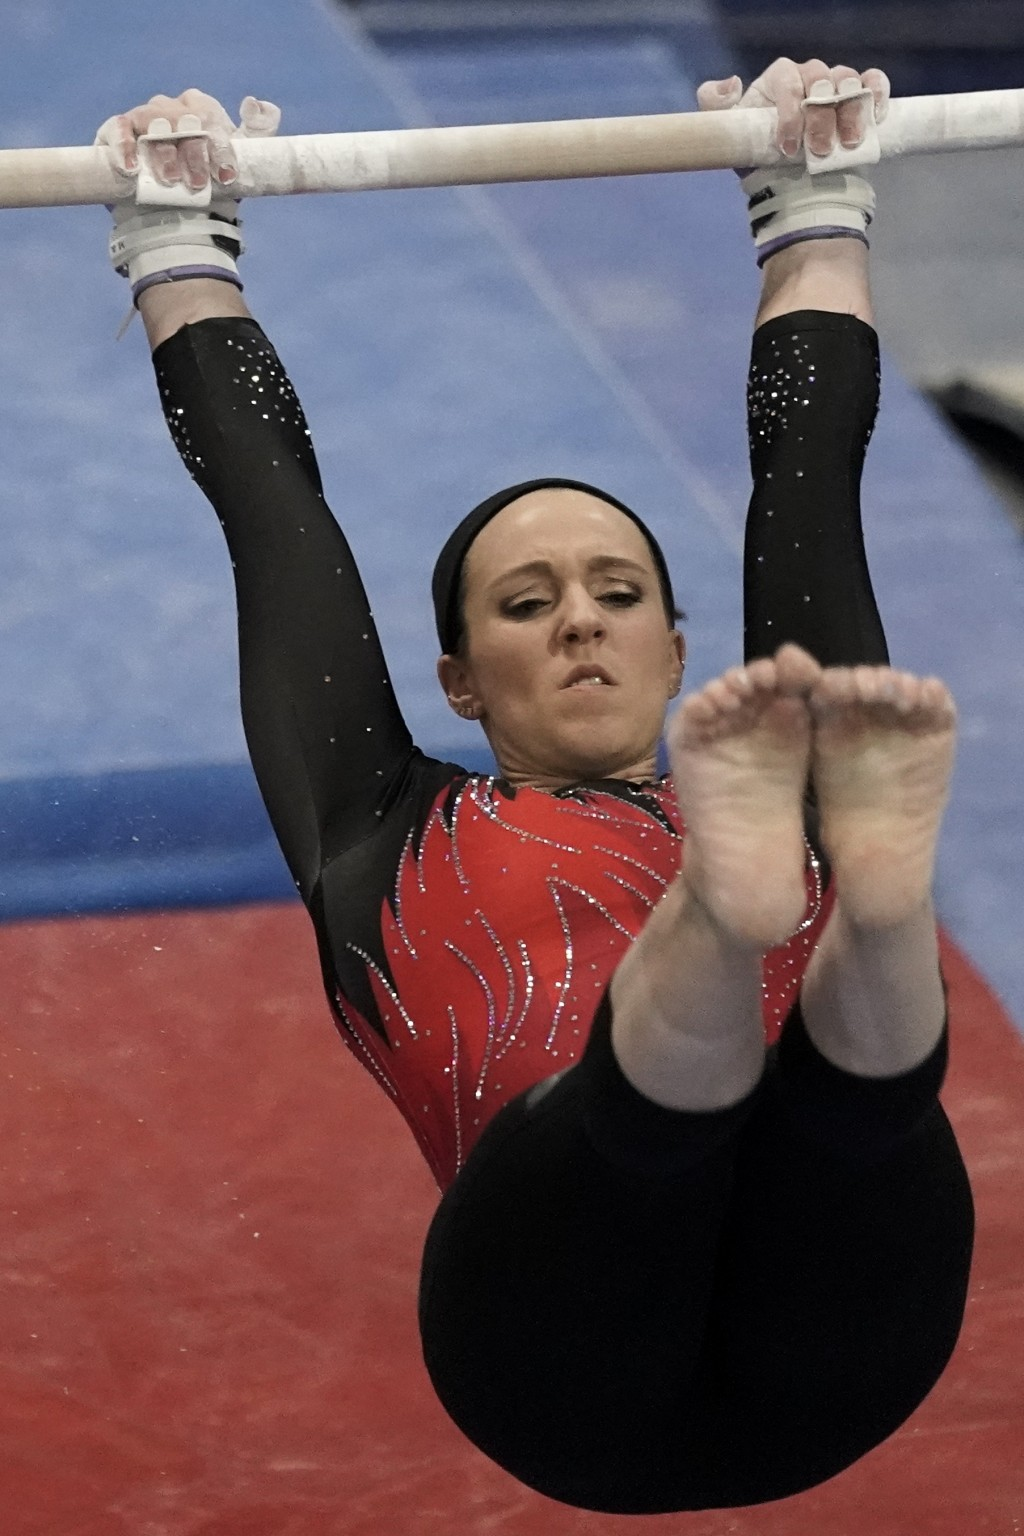 Chellsie Memmel works out Thursday, Feb. 18, 2021, in New Berlin, Wisc. The 32-year-old former world champion, Olympic silver medalist married mother ...